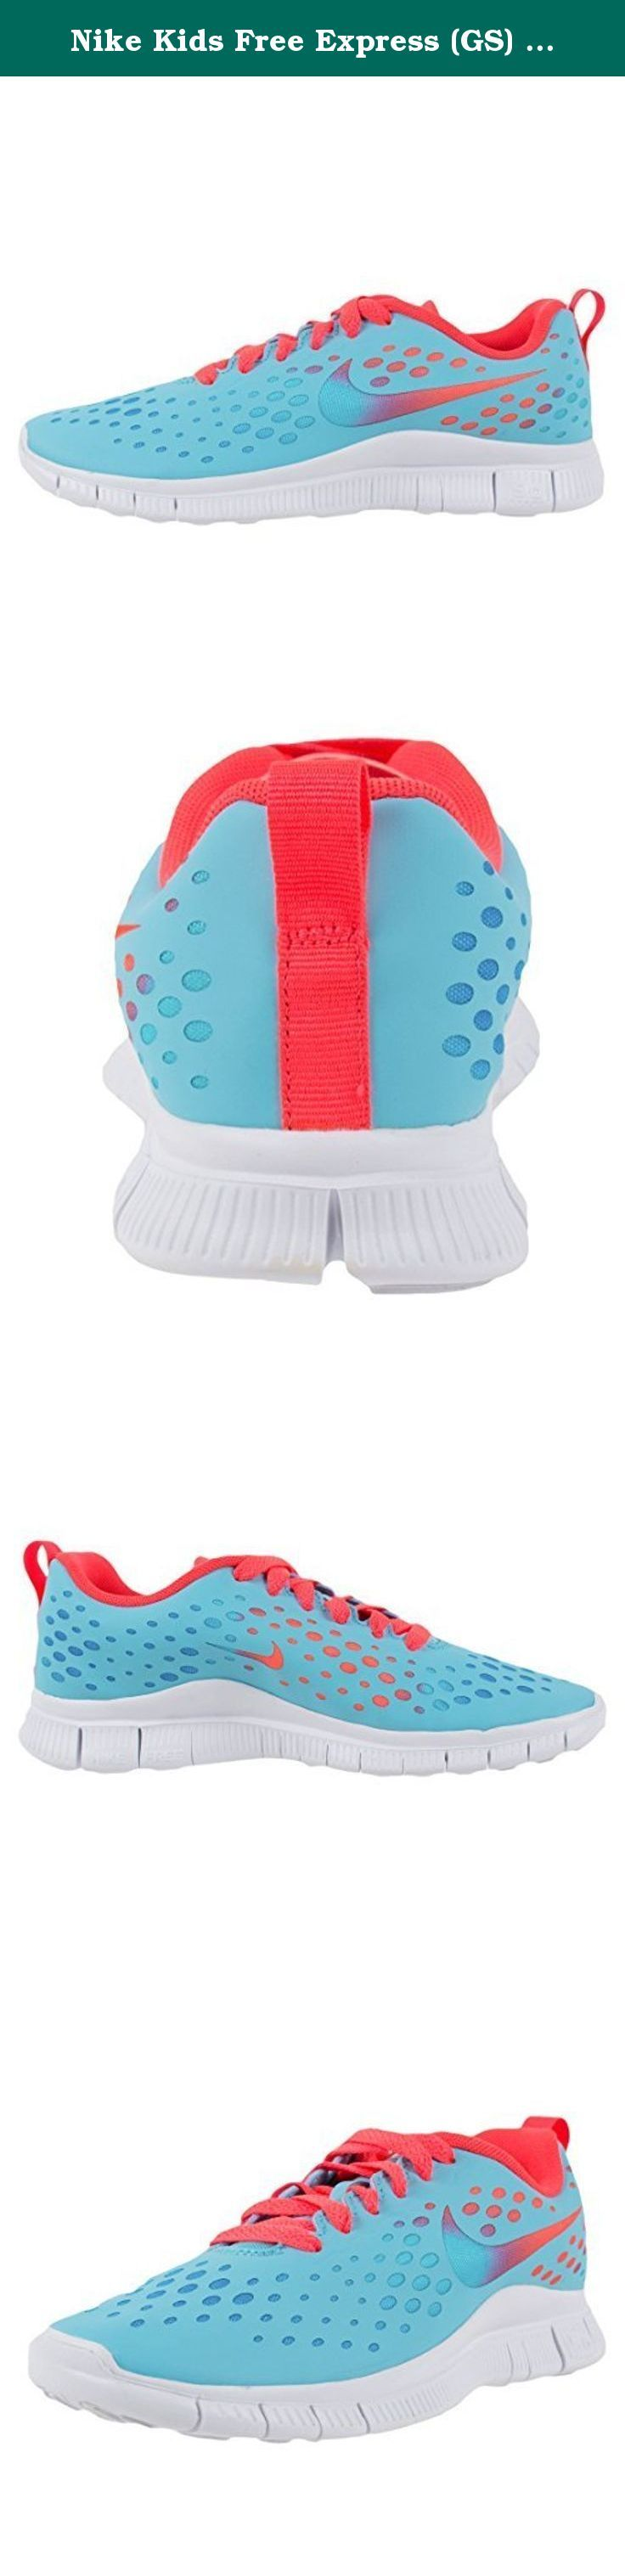 Nike Kids Free Express (GS) Running Shoe-Polarized Blue/Laser Crimson-5.5. Model Number: 641866400 Color: POLARIZED BLUE/POLARIZED BLACK-LASER CRIMSON-VV WHITE Made In: Indonesia Brand New With Original Box.